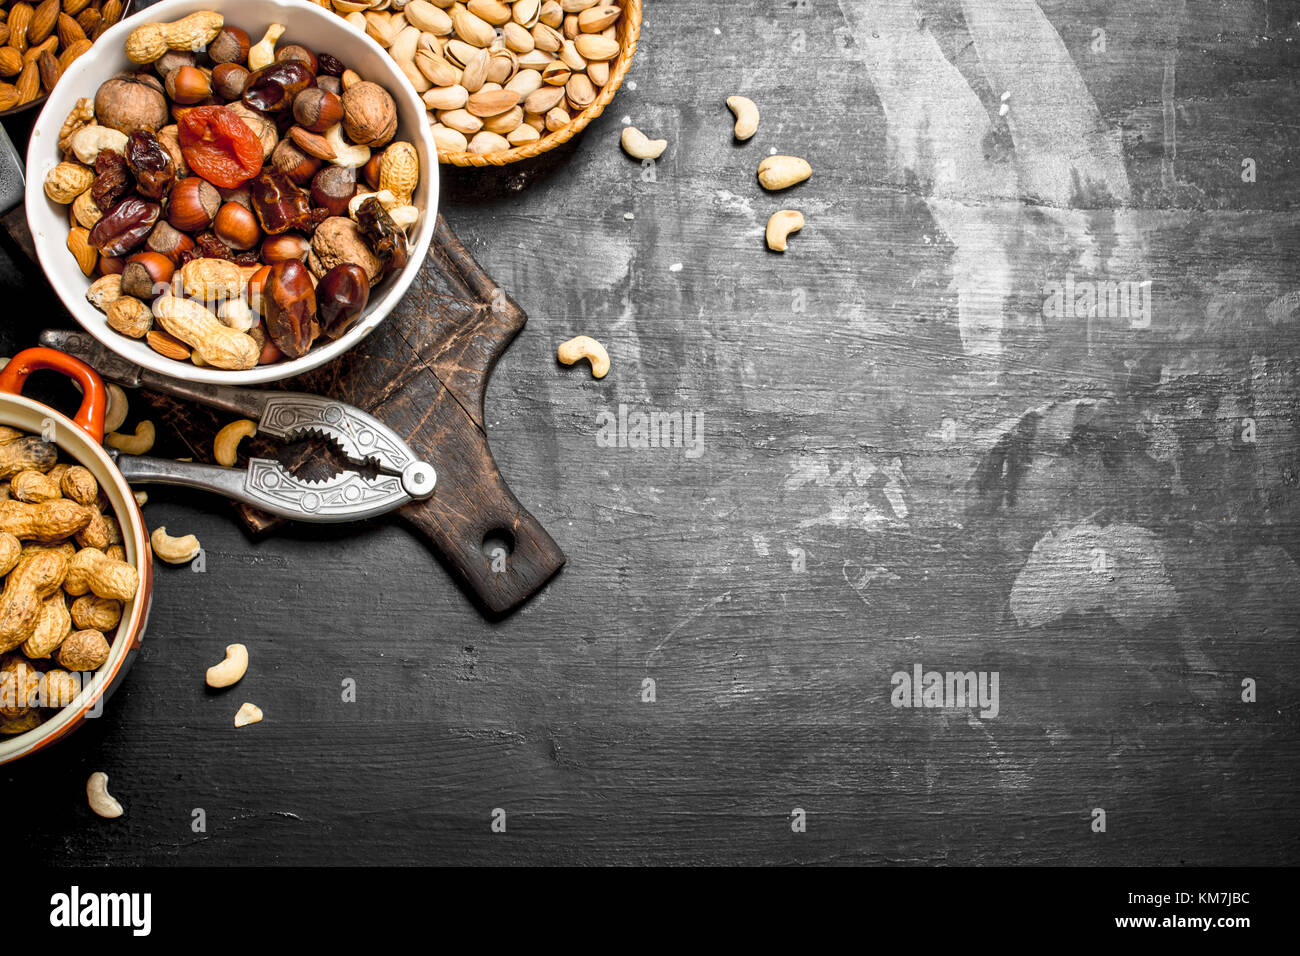 Nuts and dried fruit in a bowl with a Nutcracker. On a black chalkboard. - Stock Image